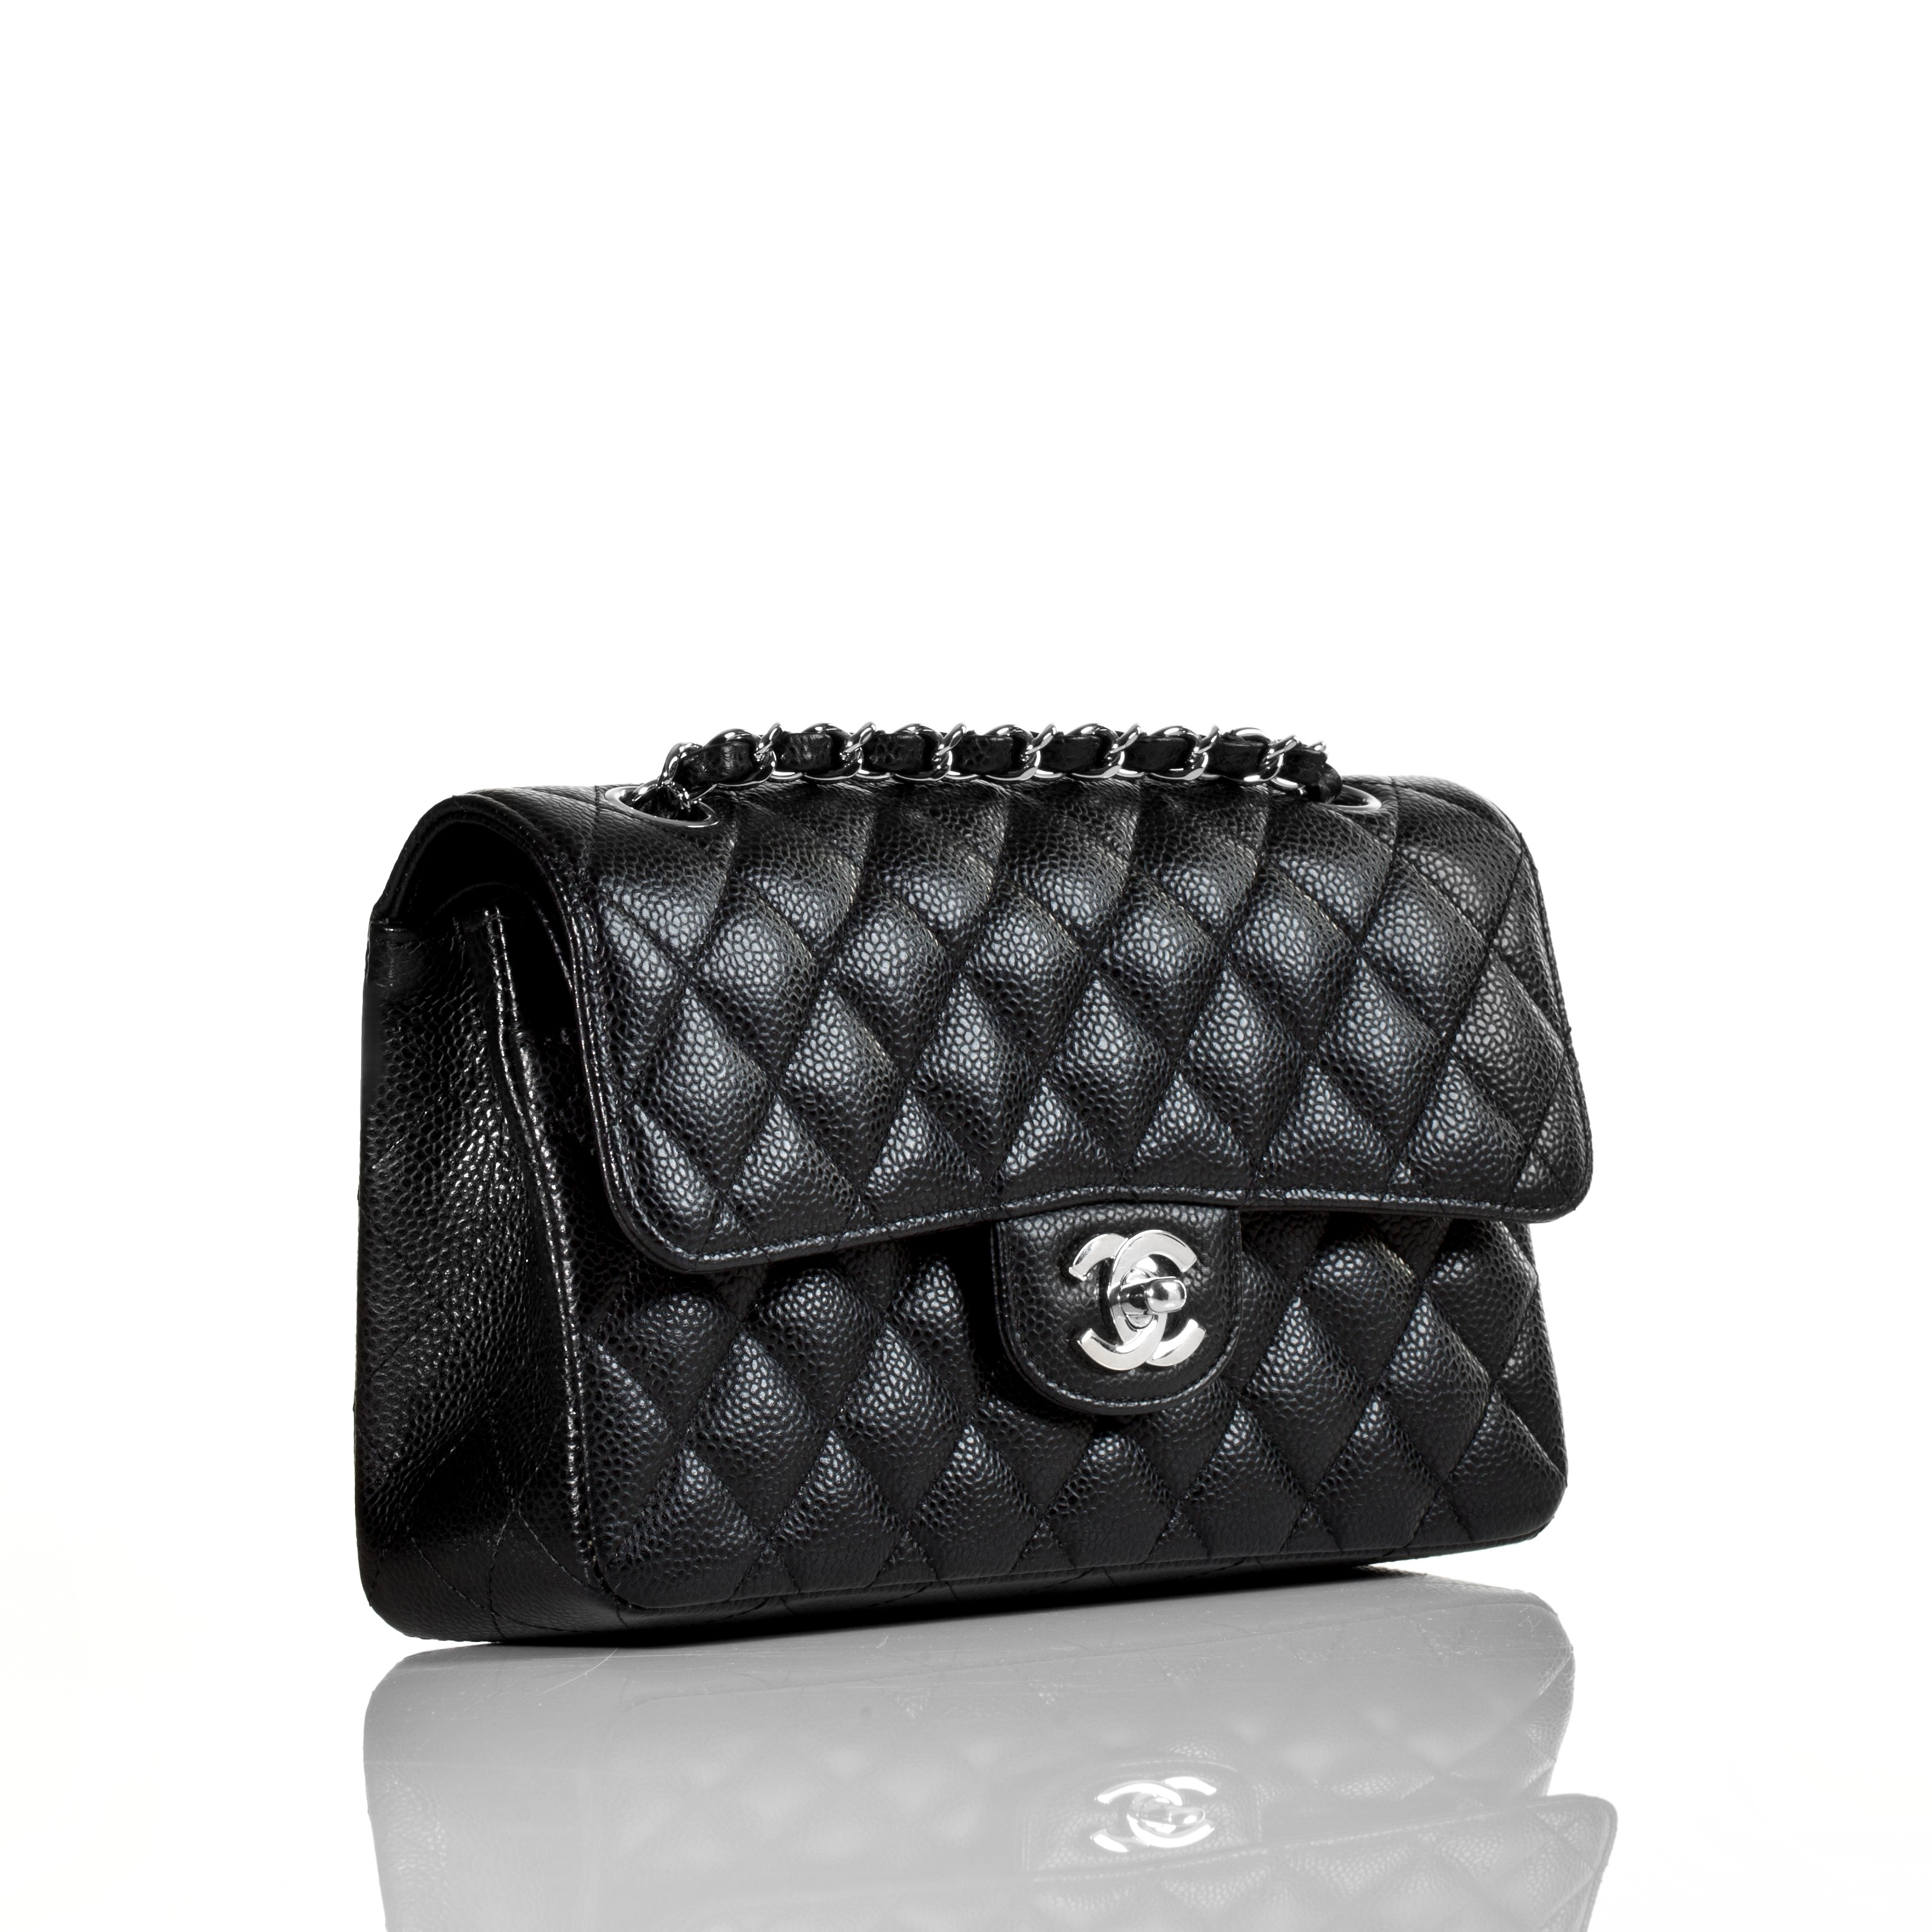 chanel classic small caviar 2 55 flap bag sold out in stores